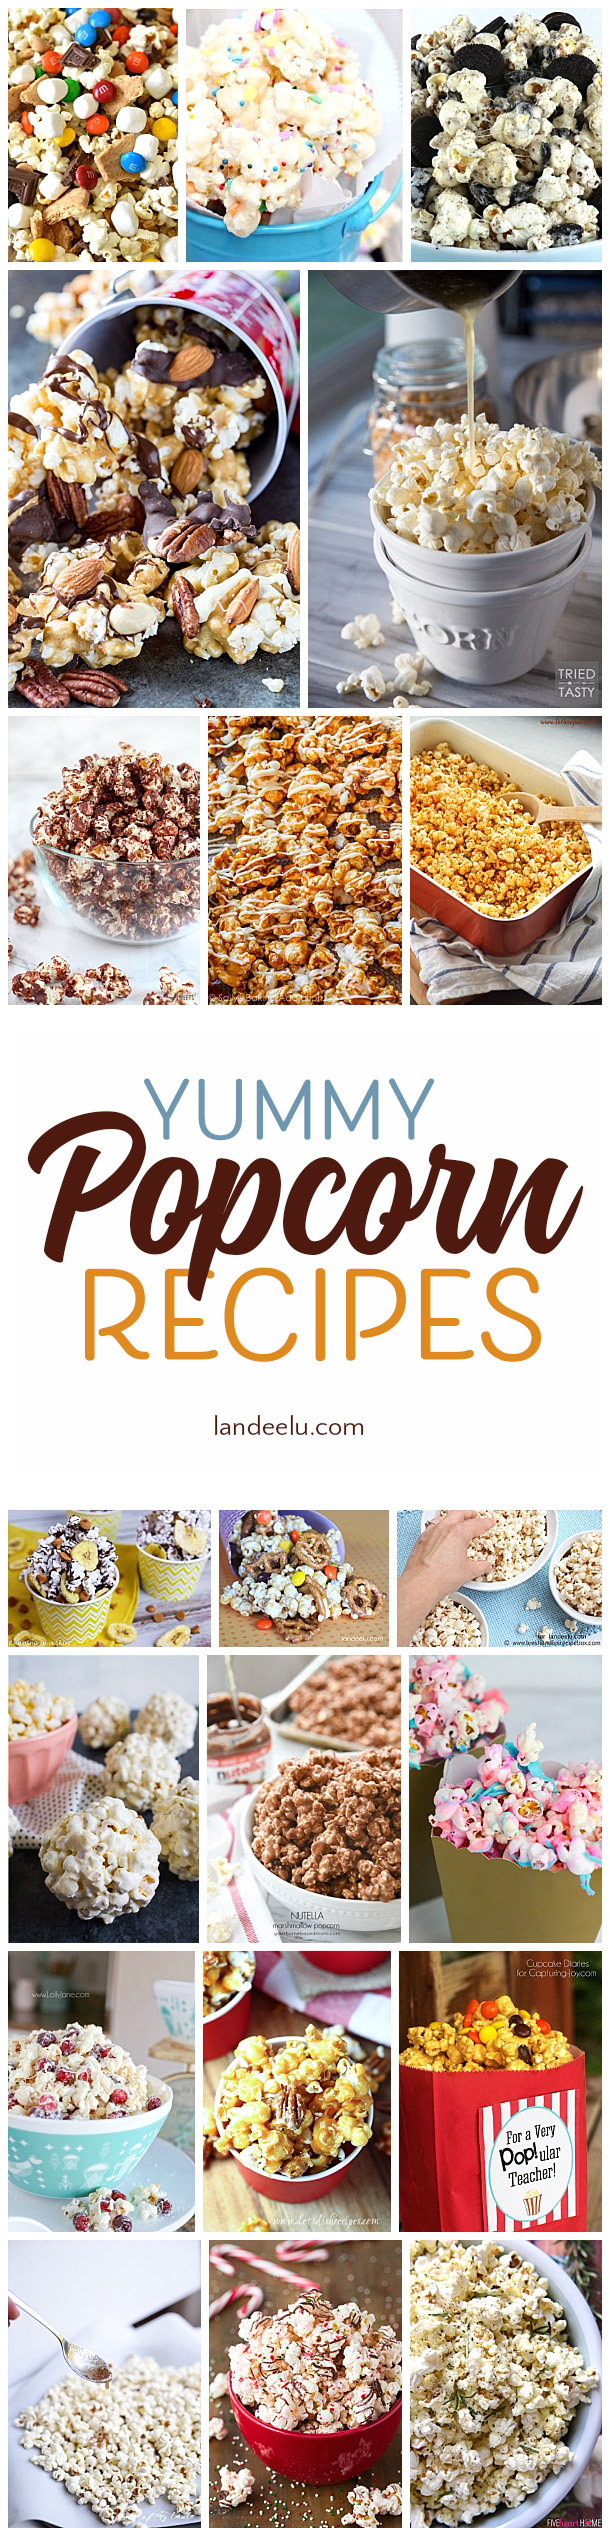 These popcorn recipes look amazing!